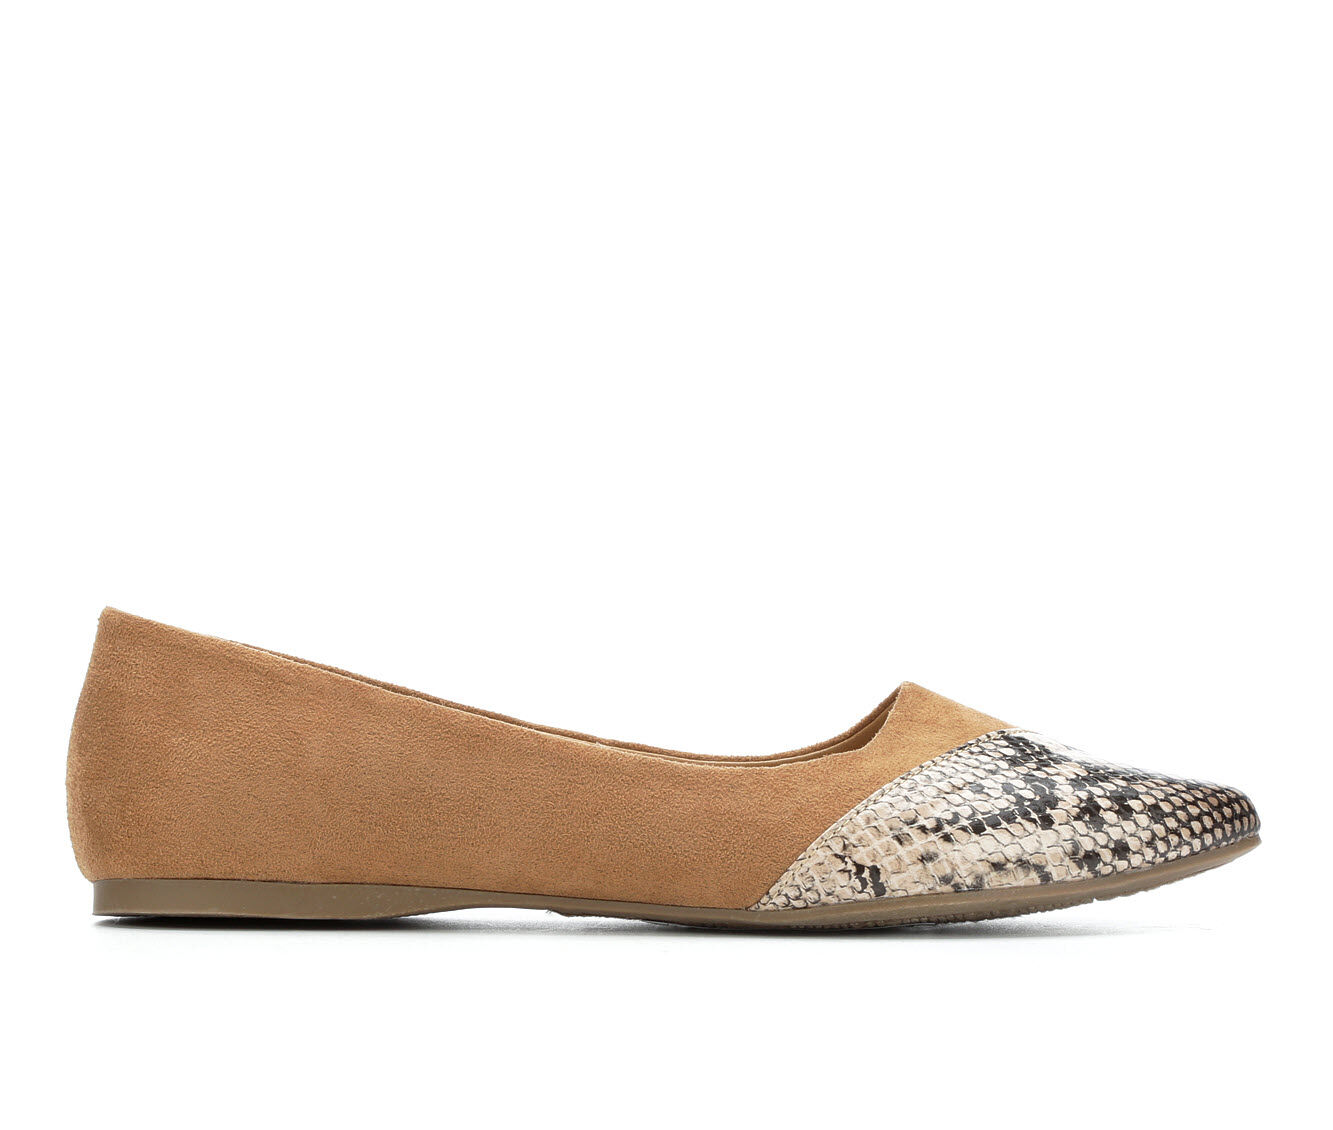 purchase official Women's Y-Not Allison Flats Beige